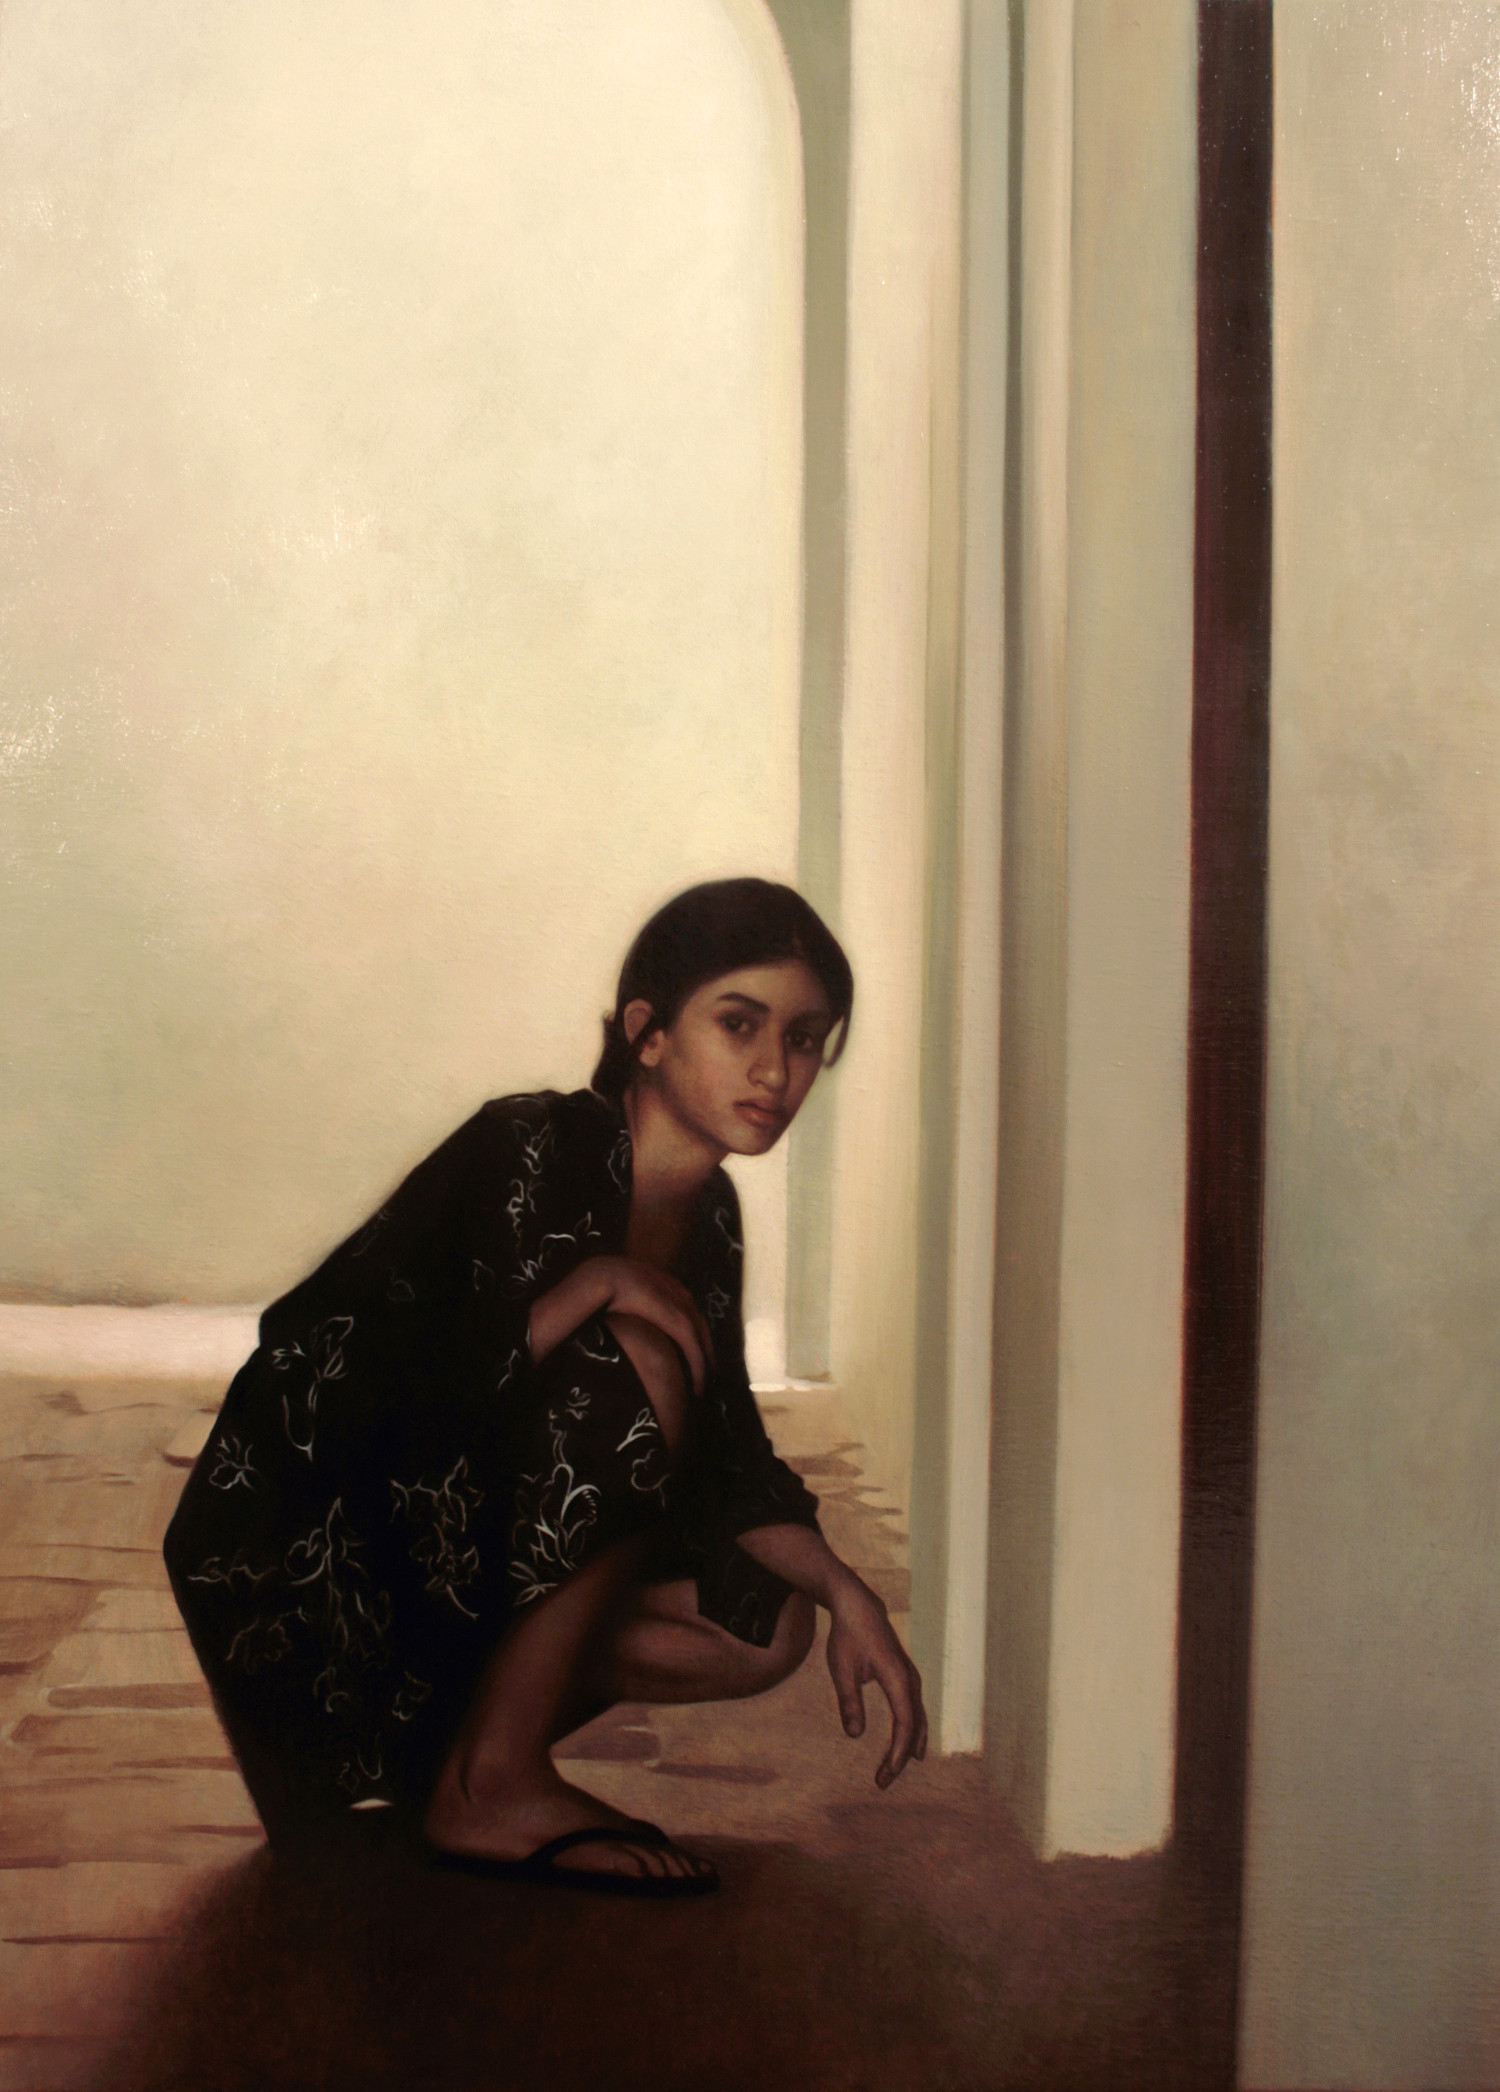 Passage , 2009, Oil on linen, 30 x 22 inches, Private collection